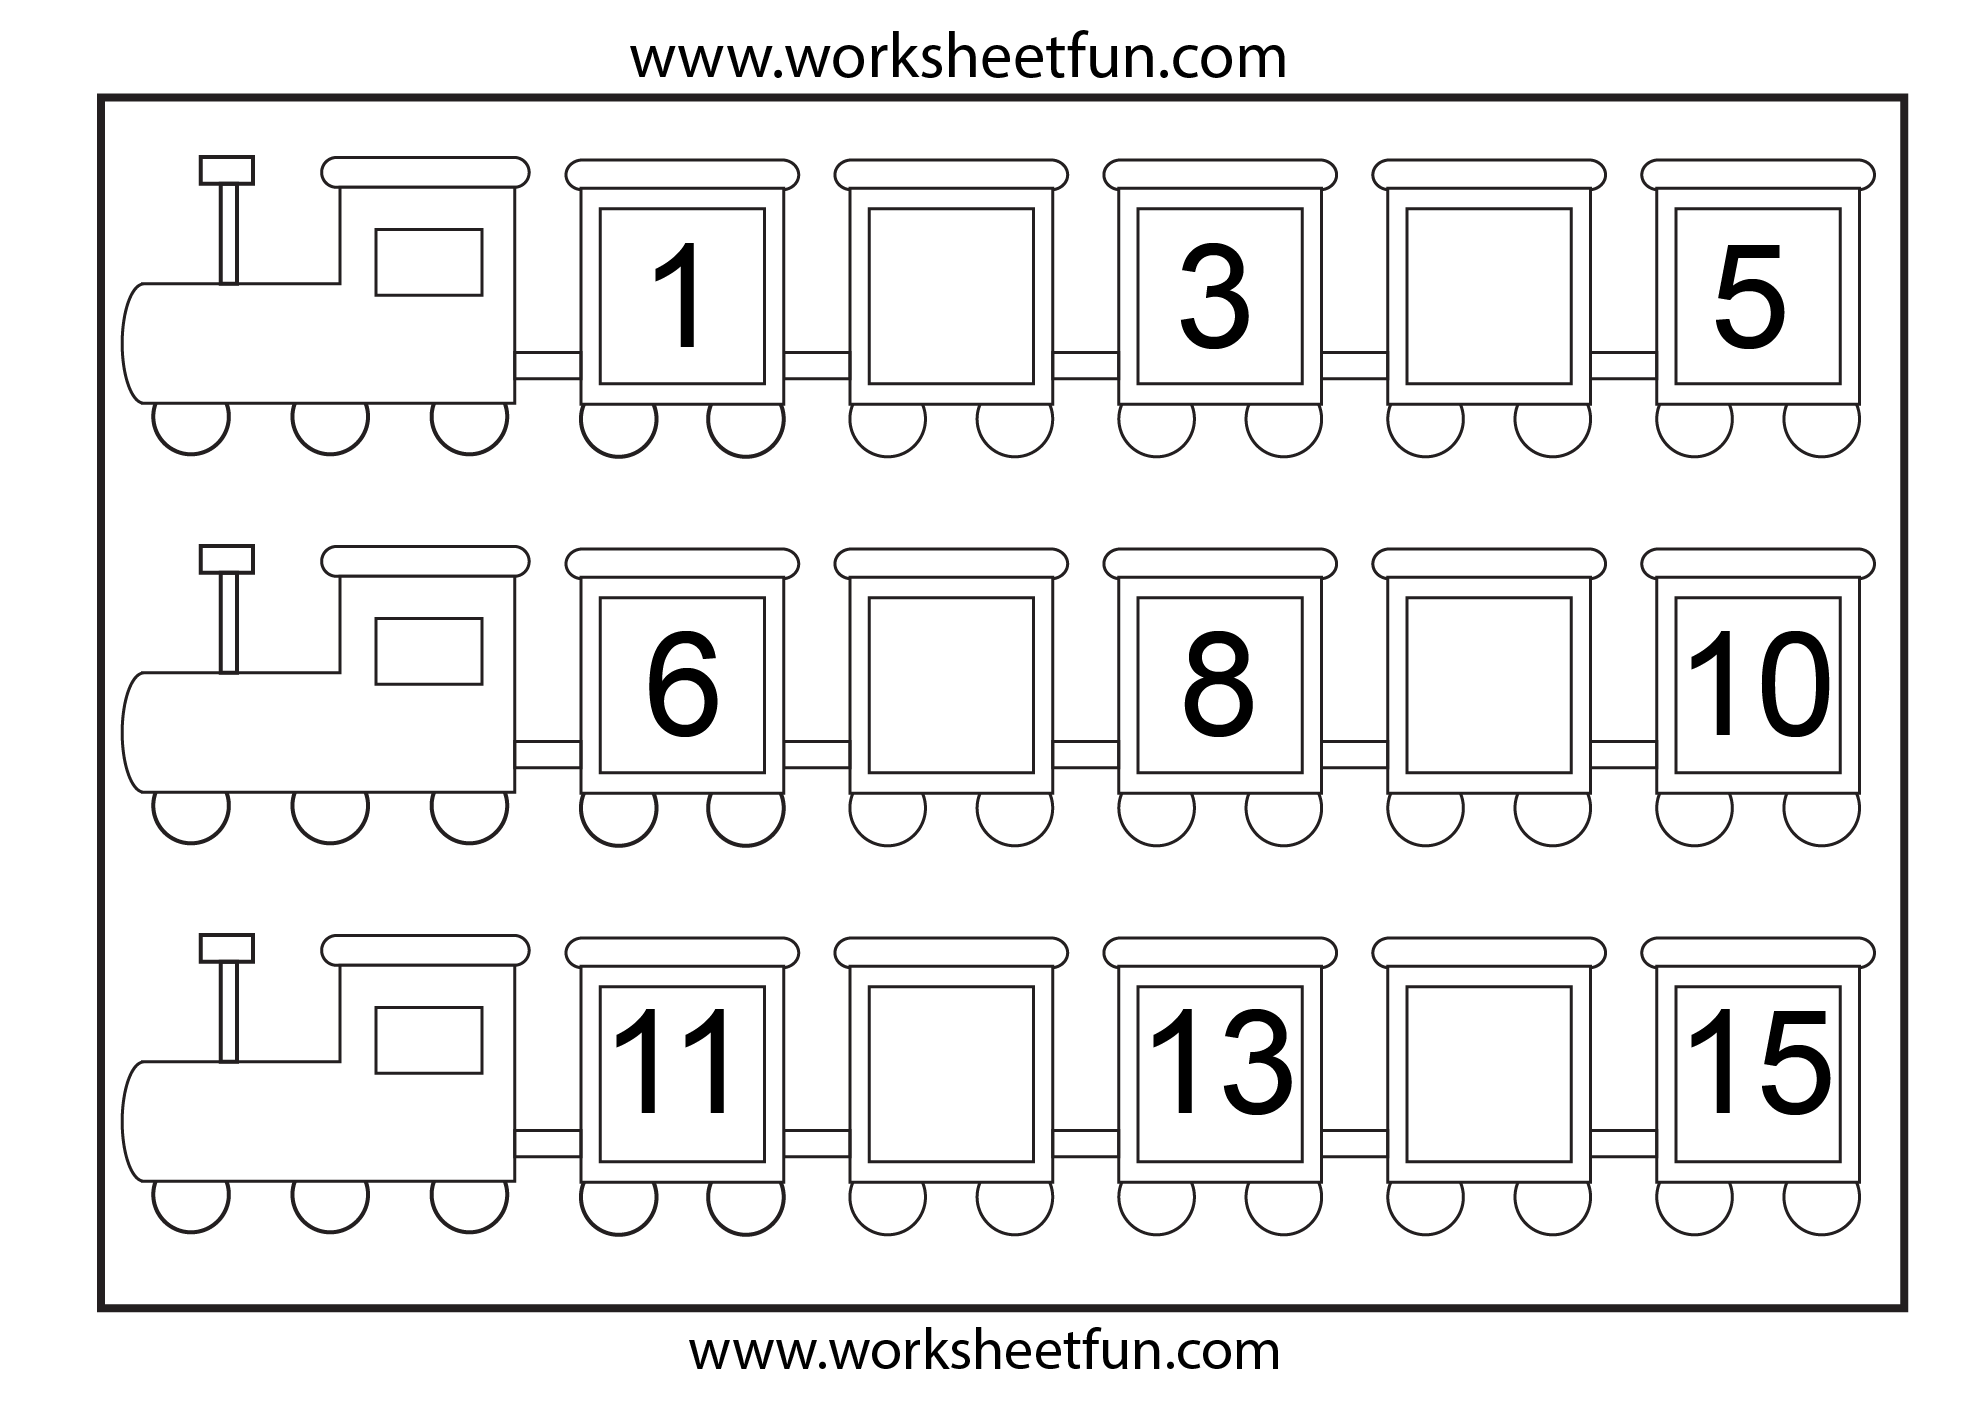 Worksheet 612792 Missing Numbers Worksheets for Kindergarten – Number Worksheet for Kindergarten